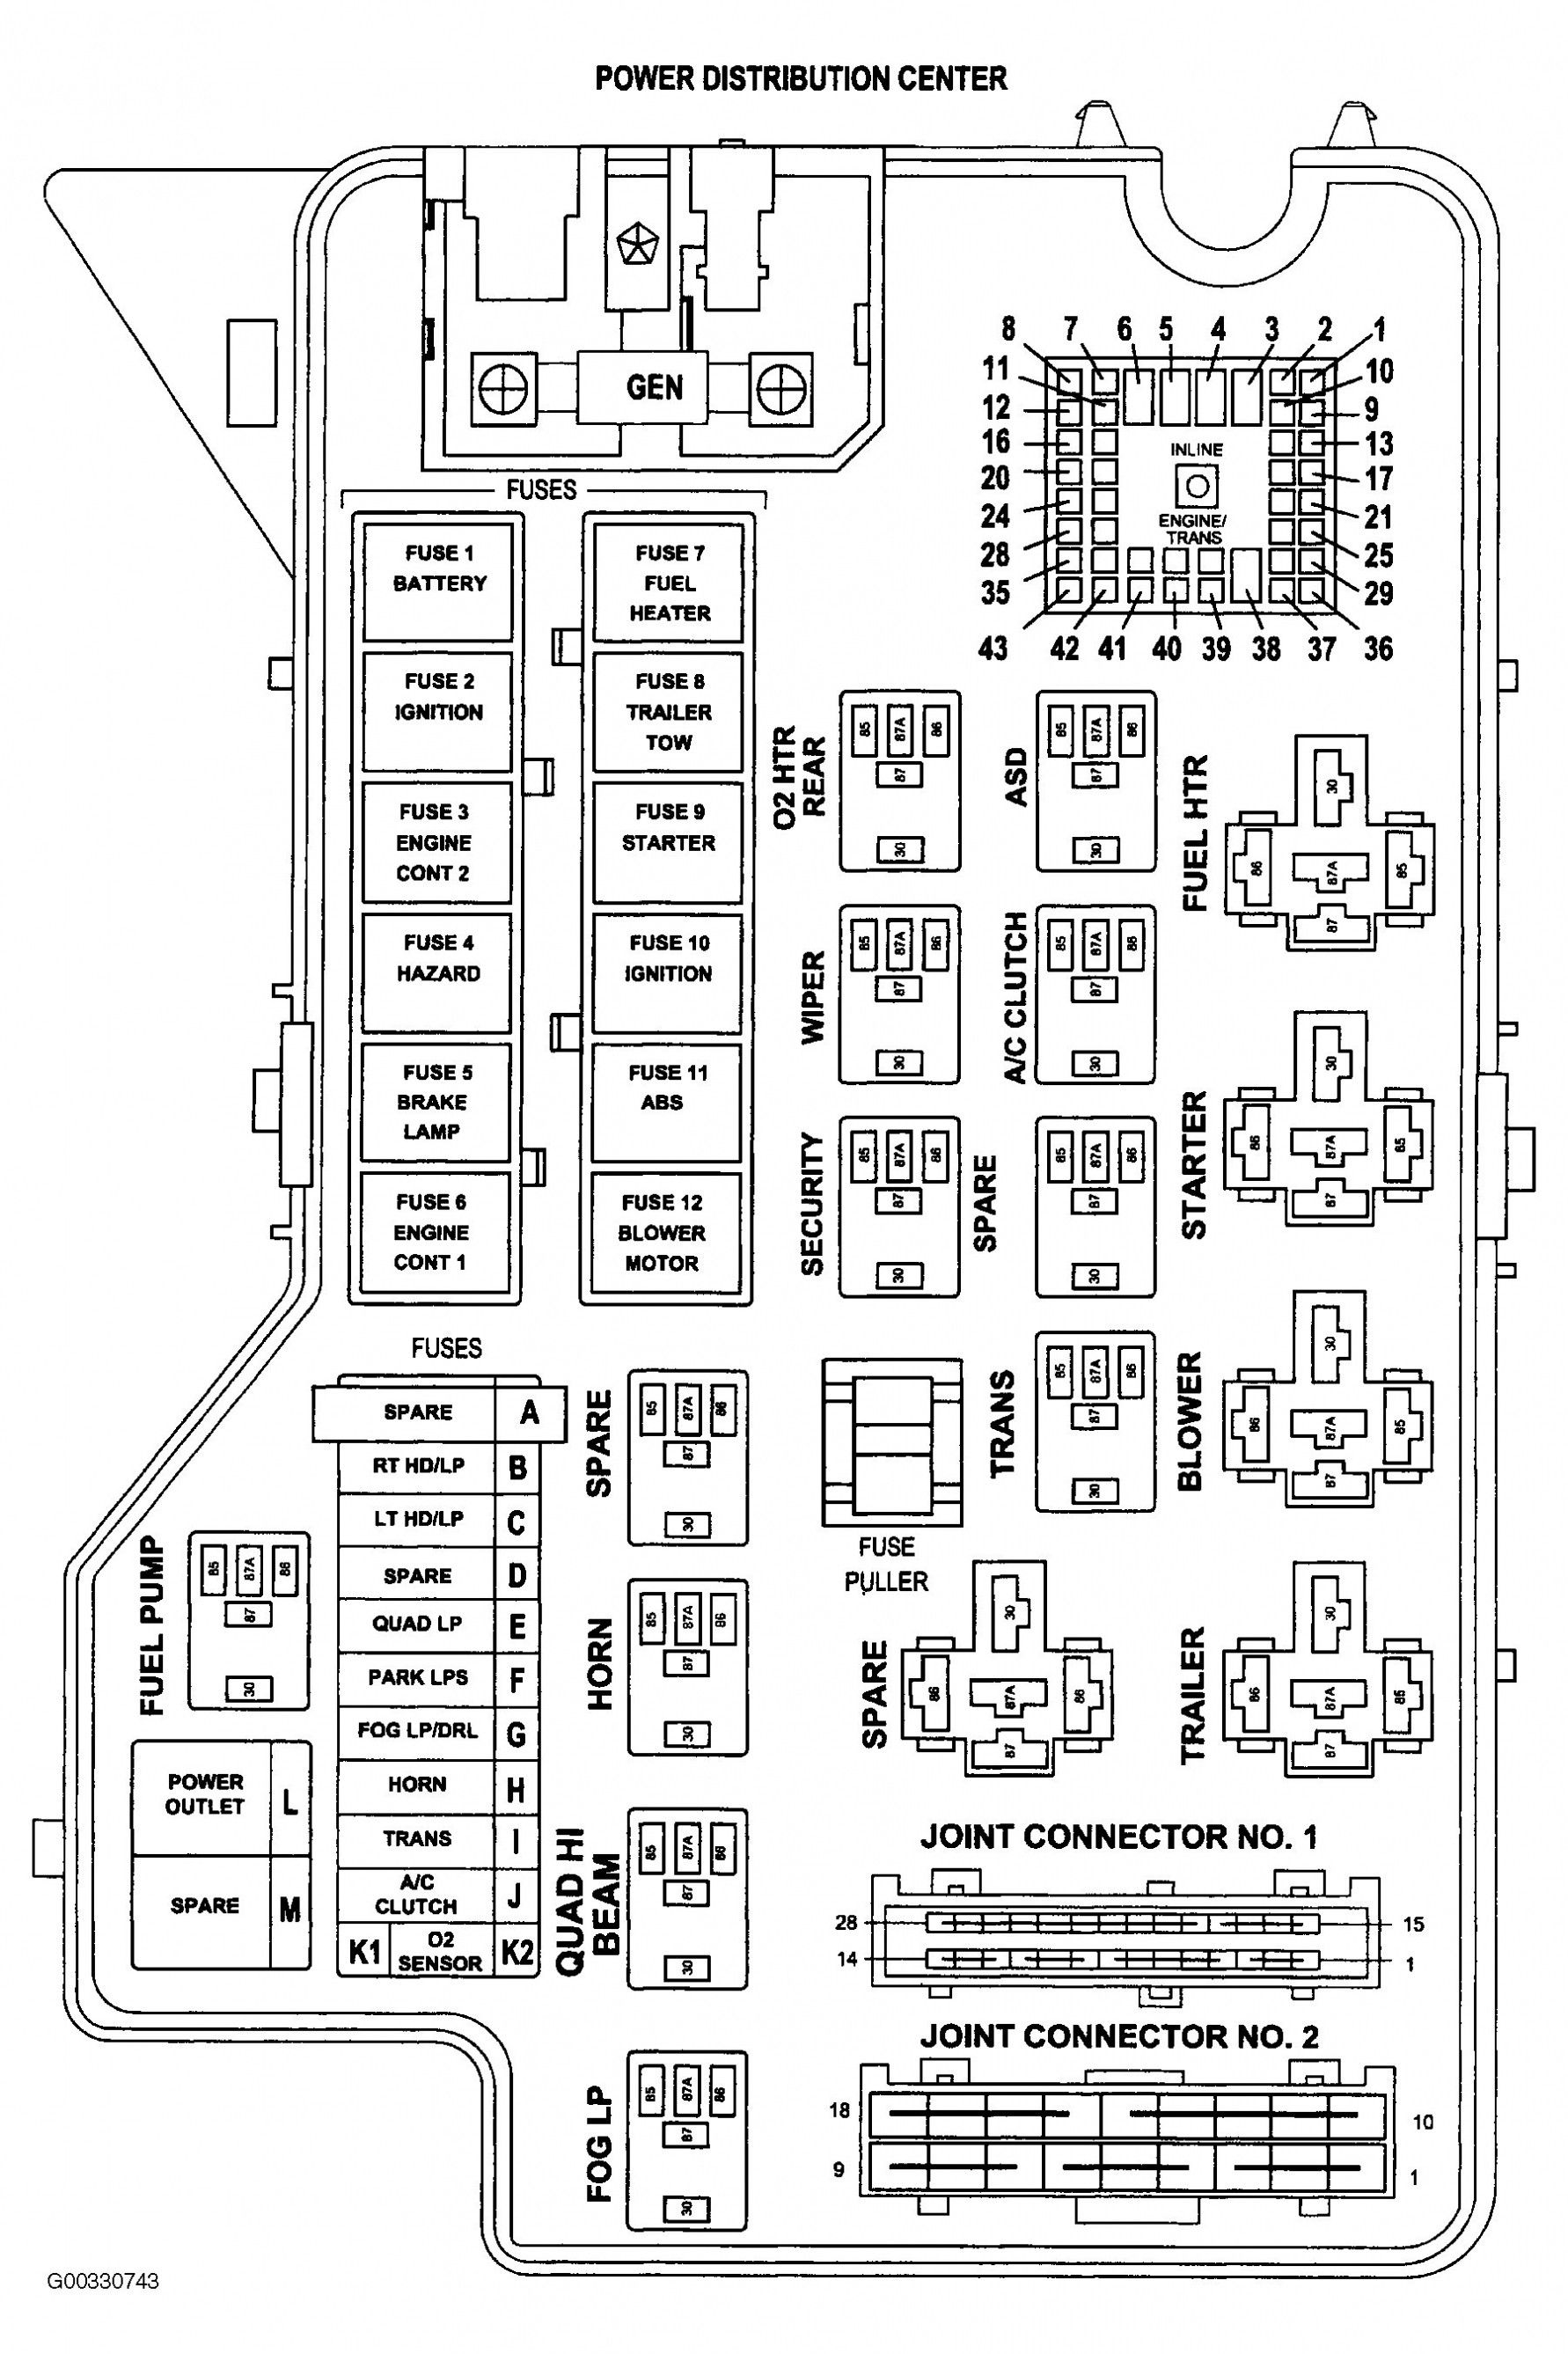 Wiring Diagram Wire Diagram 2001 Dodge Ram Stereo Wiring Diagram